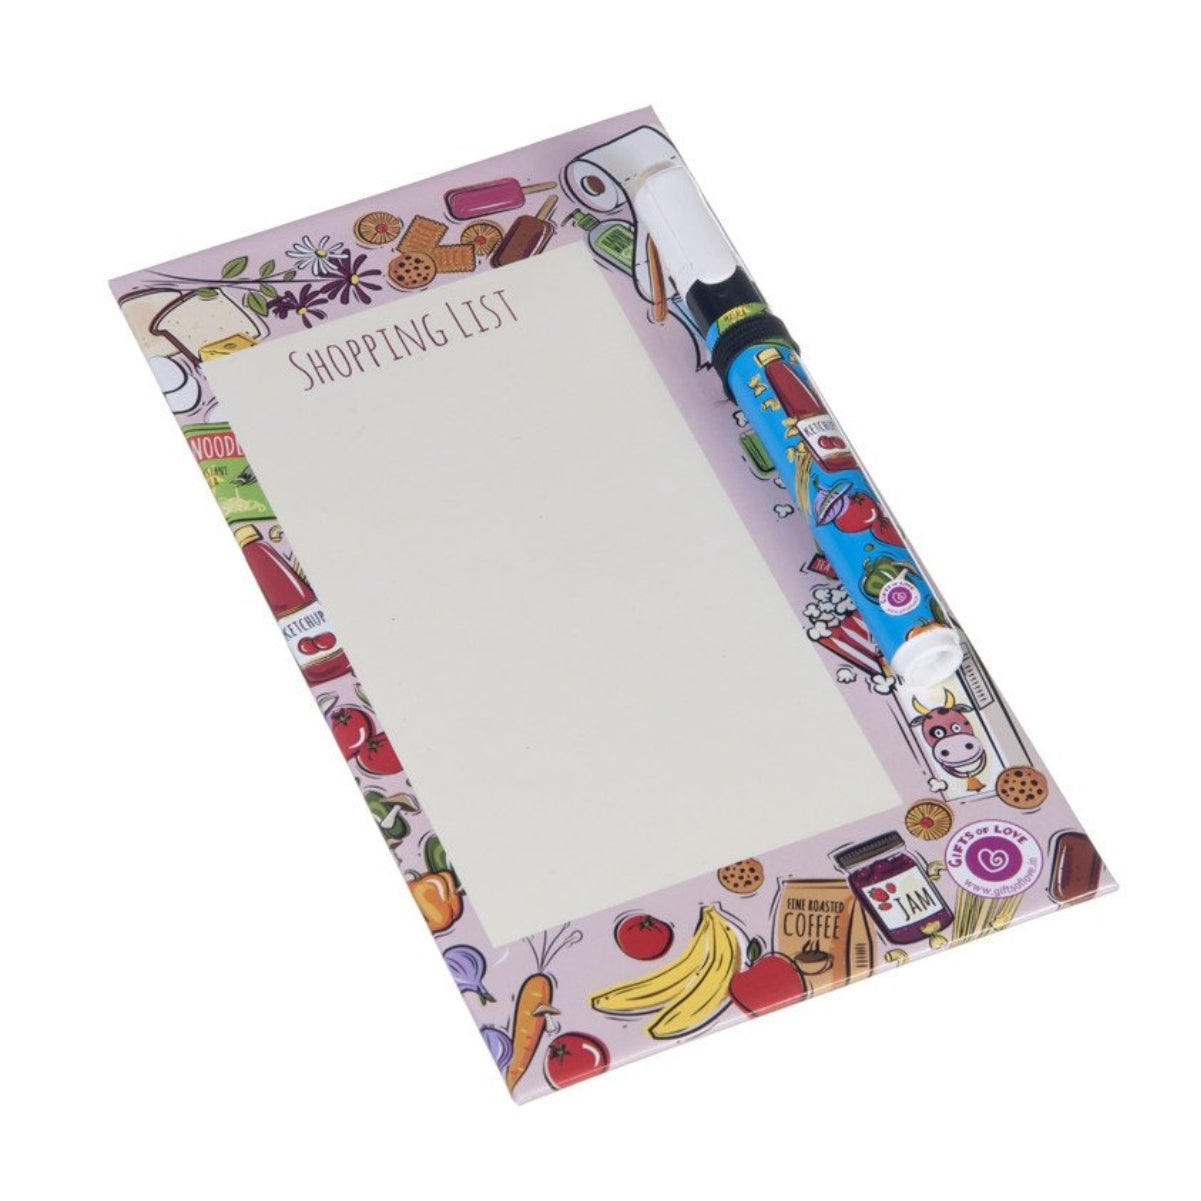 Dry Erase Board Small - Shopping List